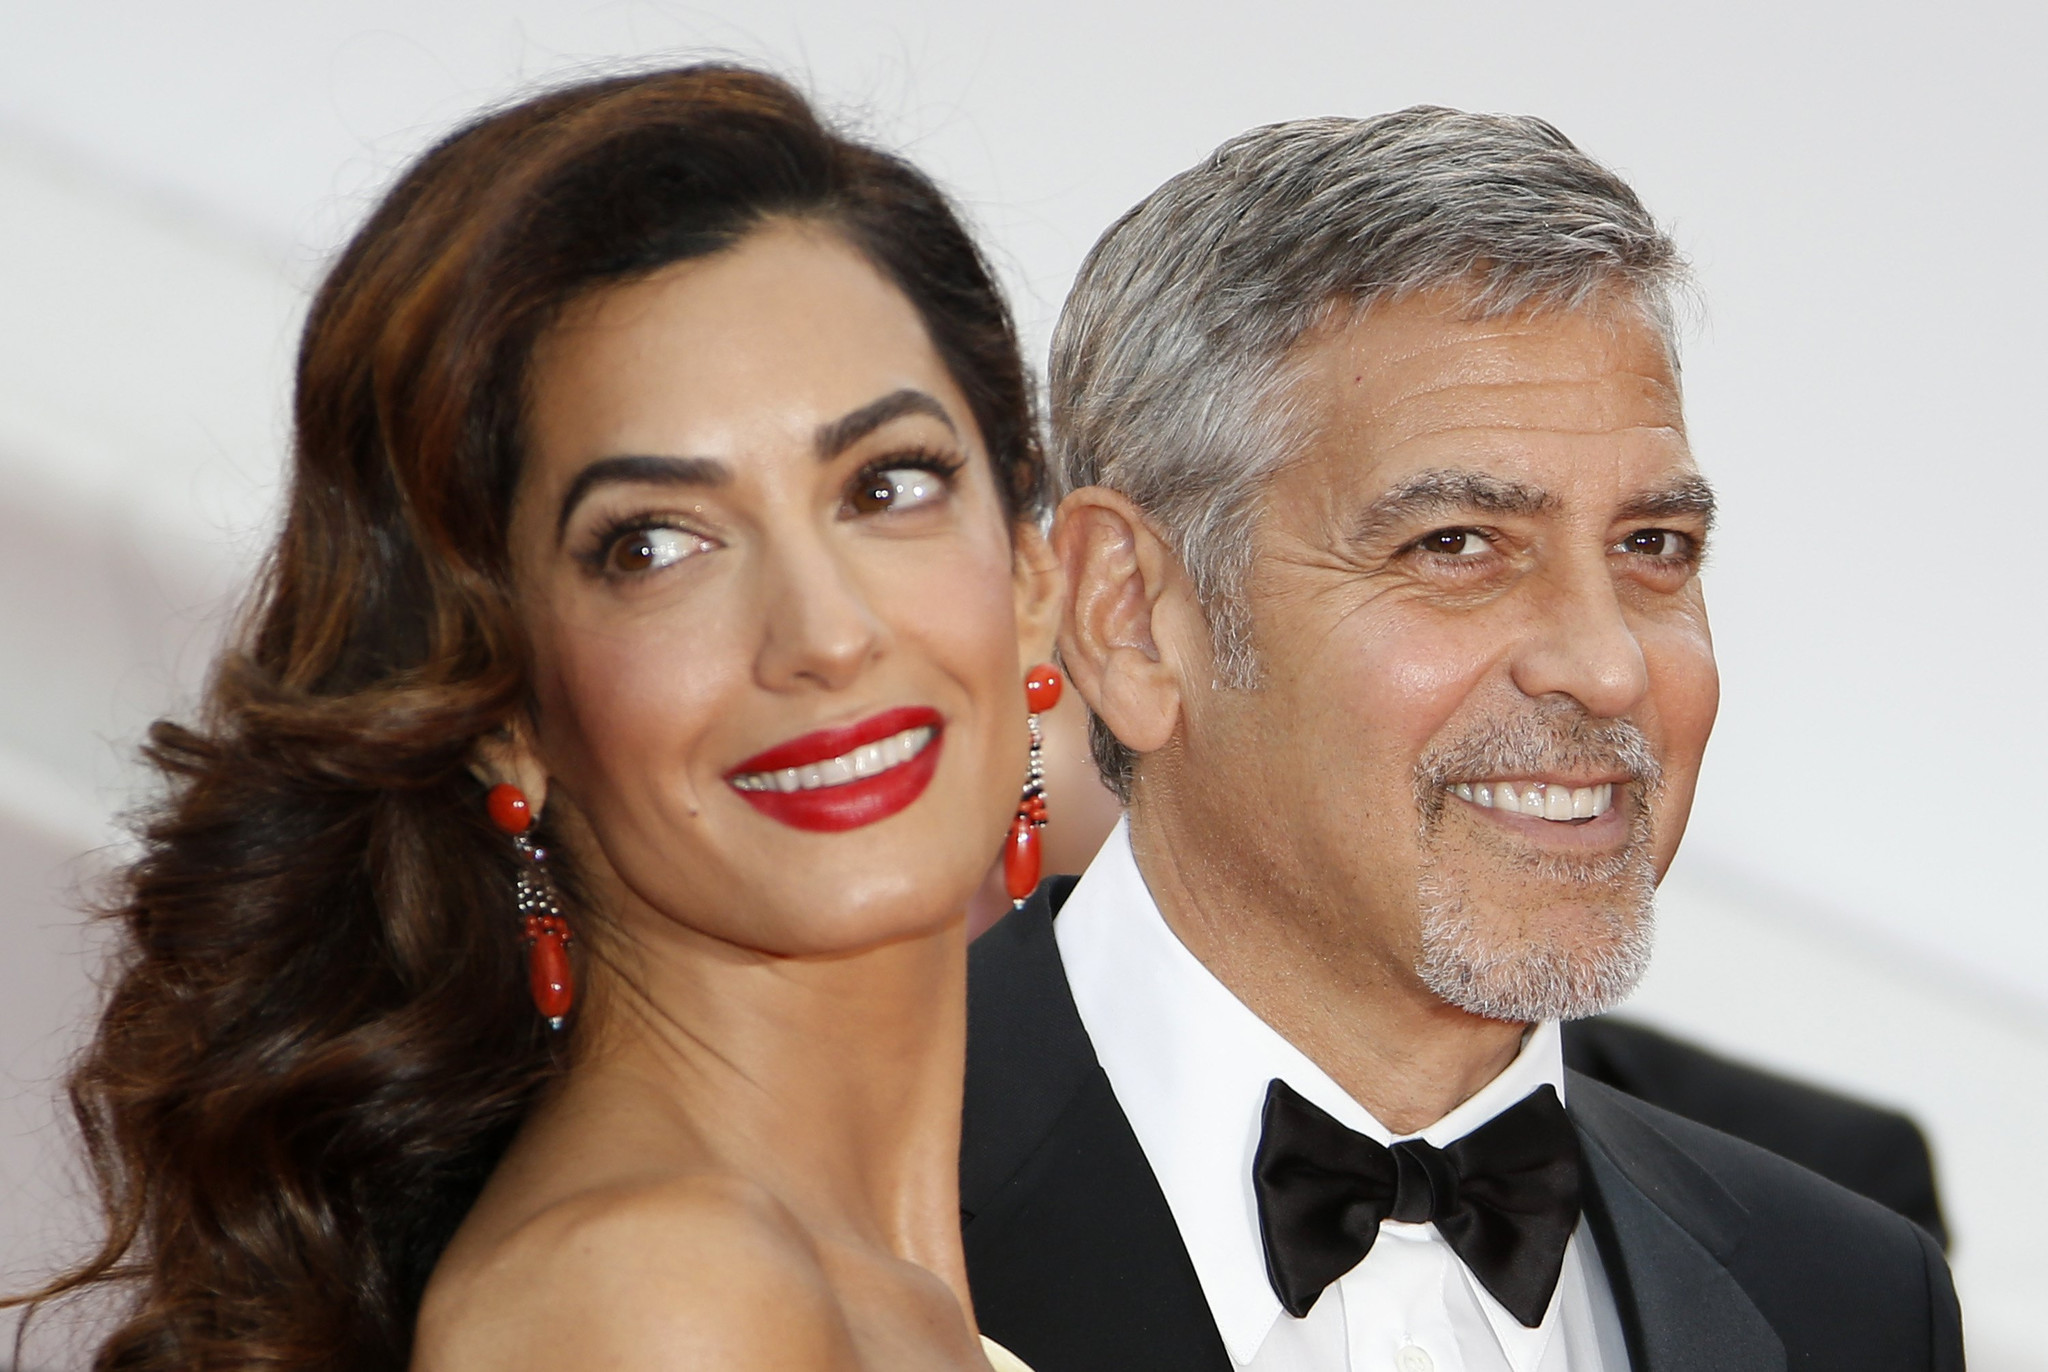 Clooneys donate $US1m to fight hate groups